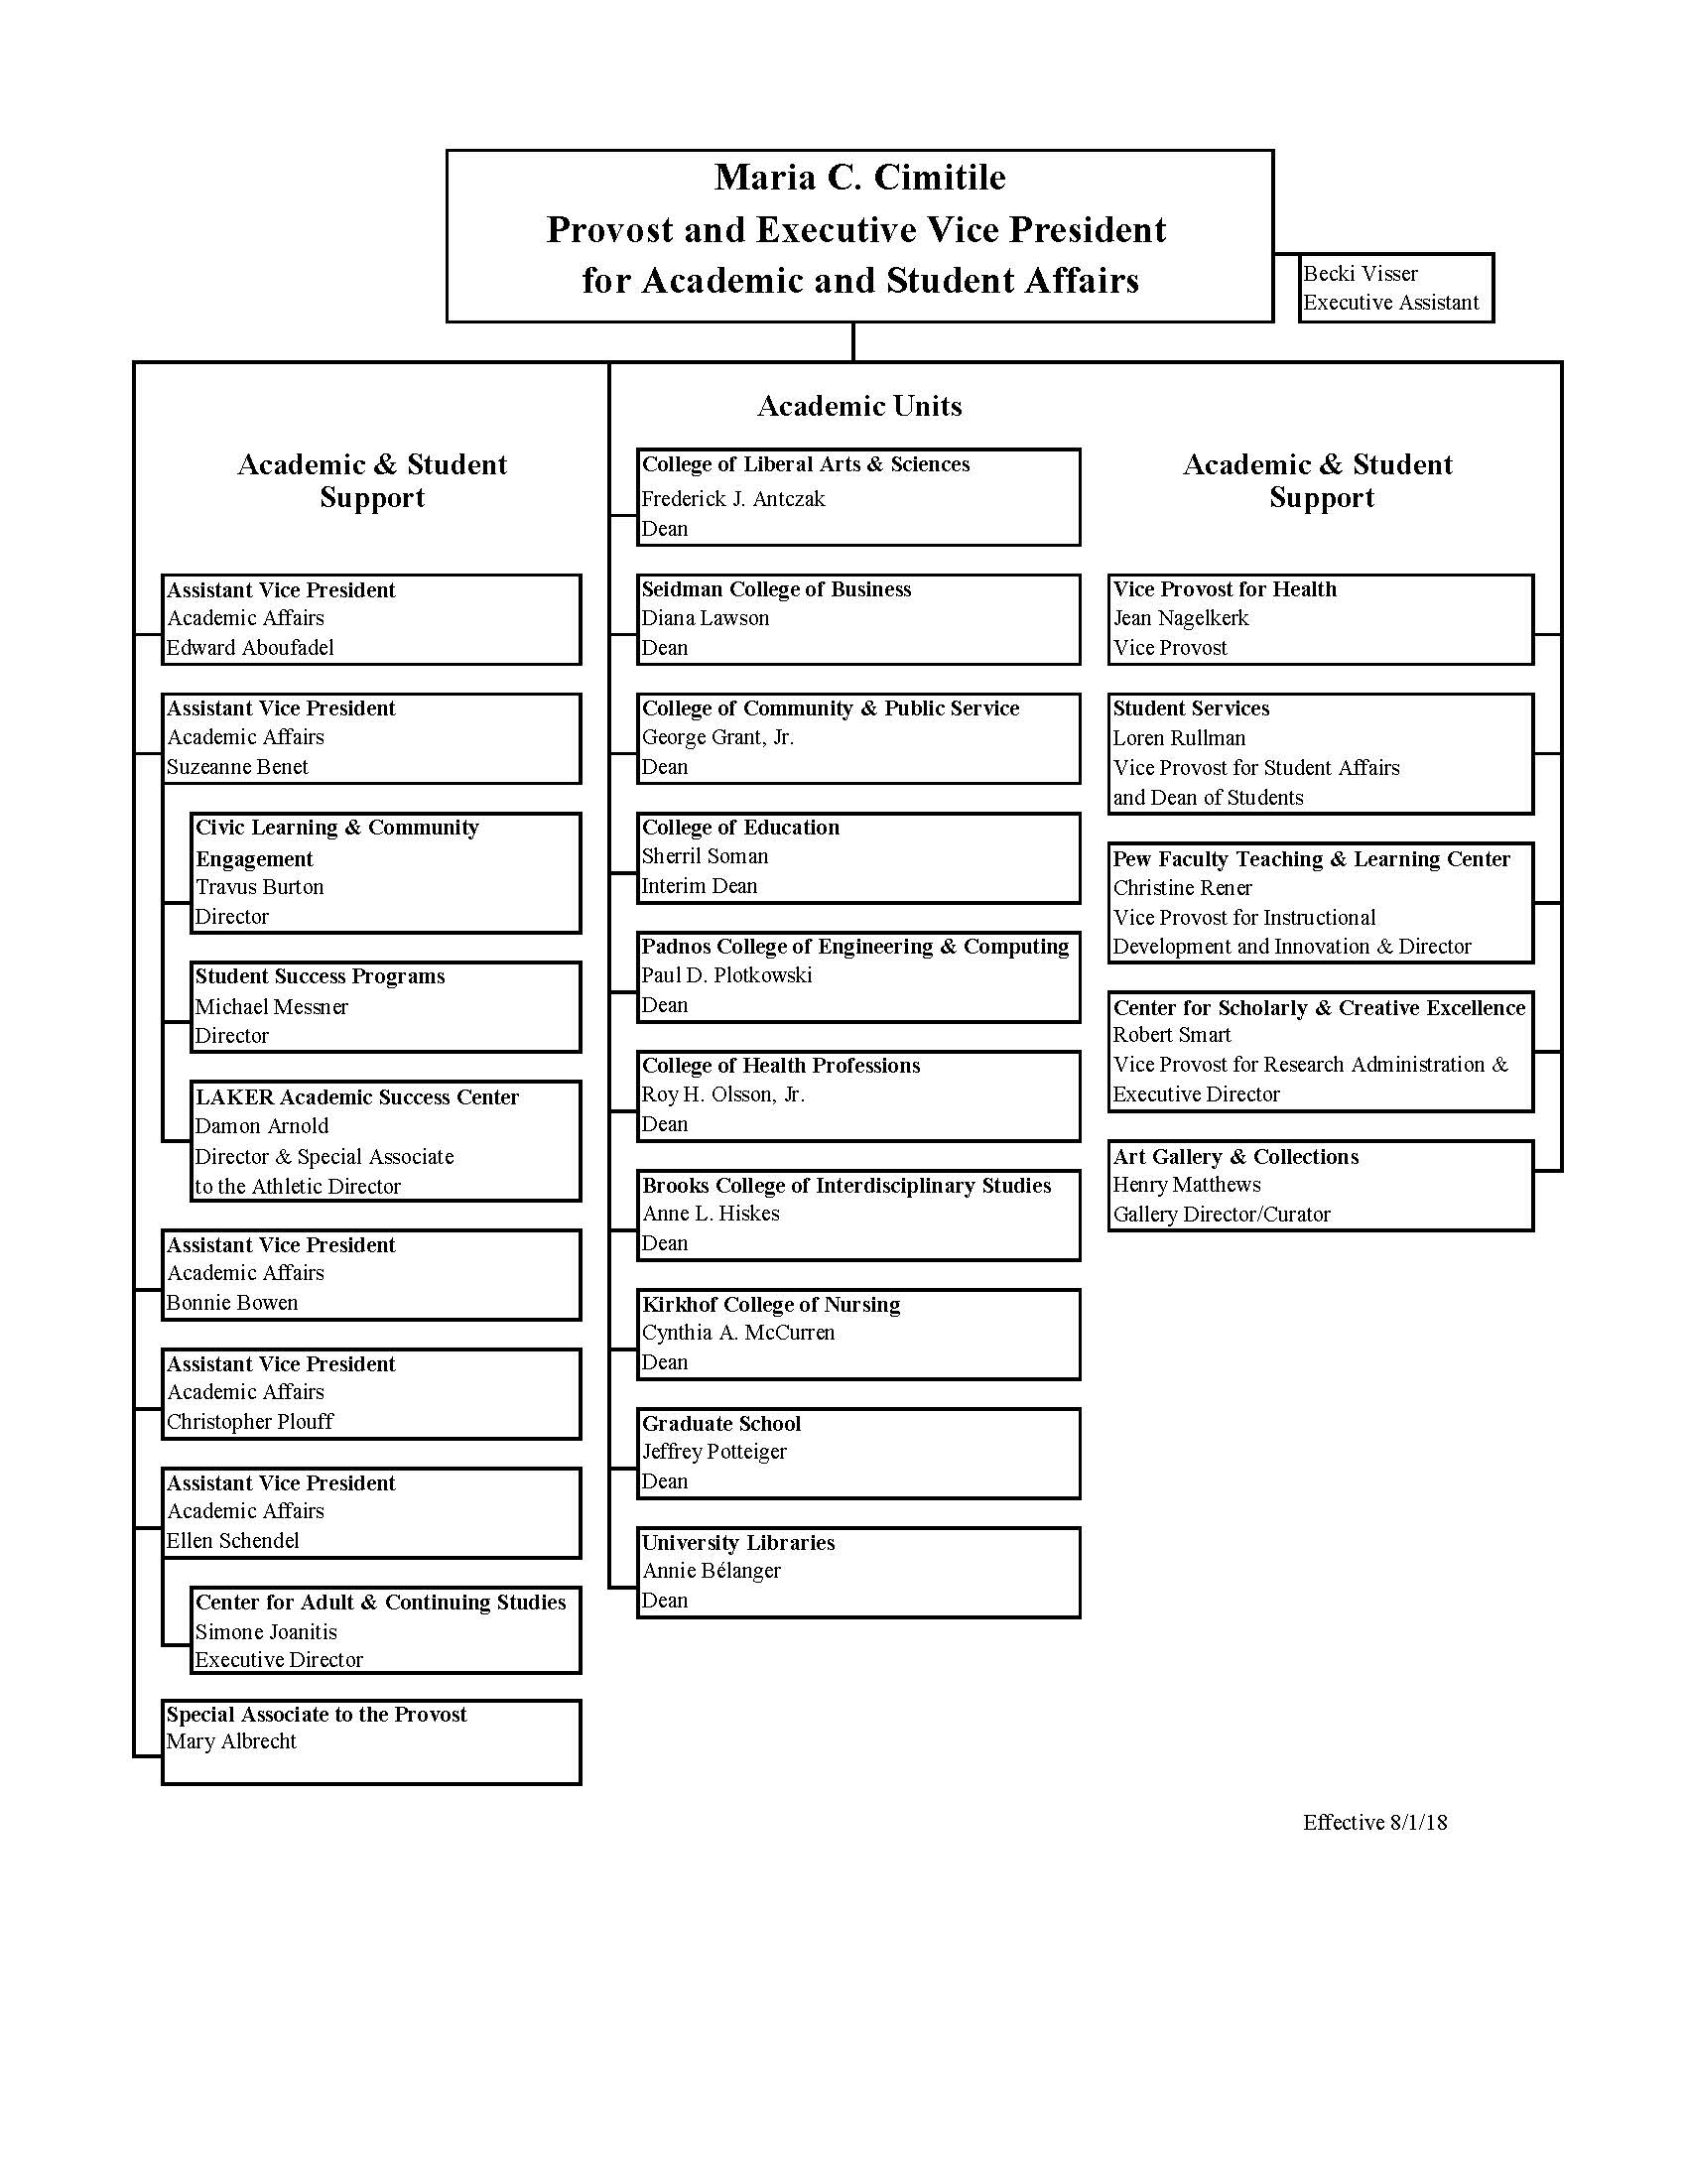 Academic and Student Affairs Organization Chart